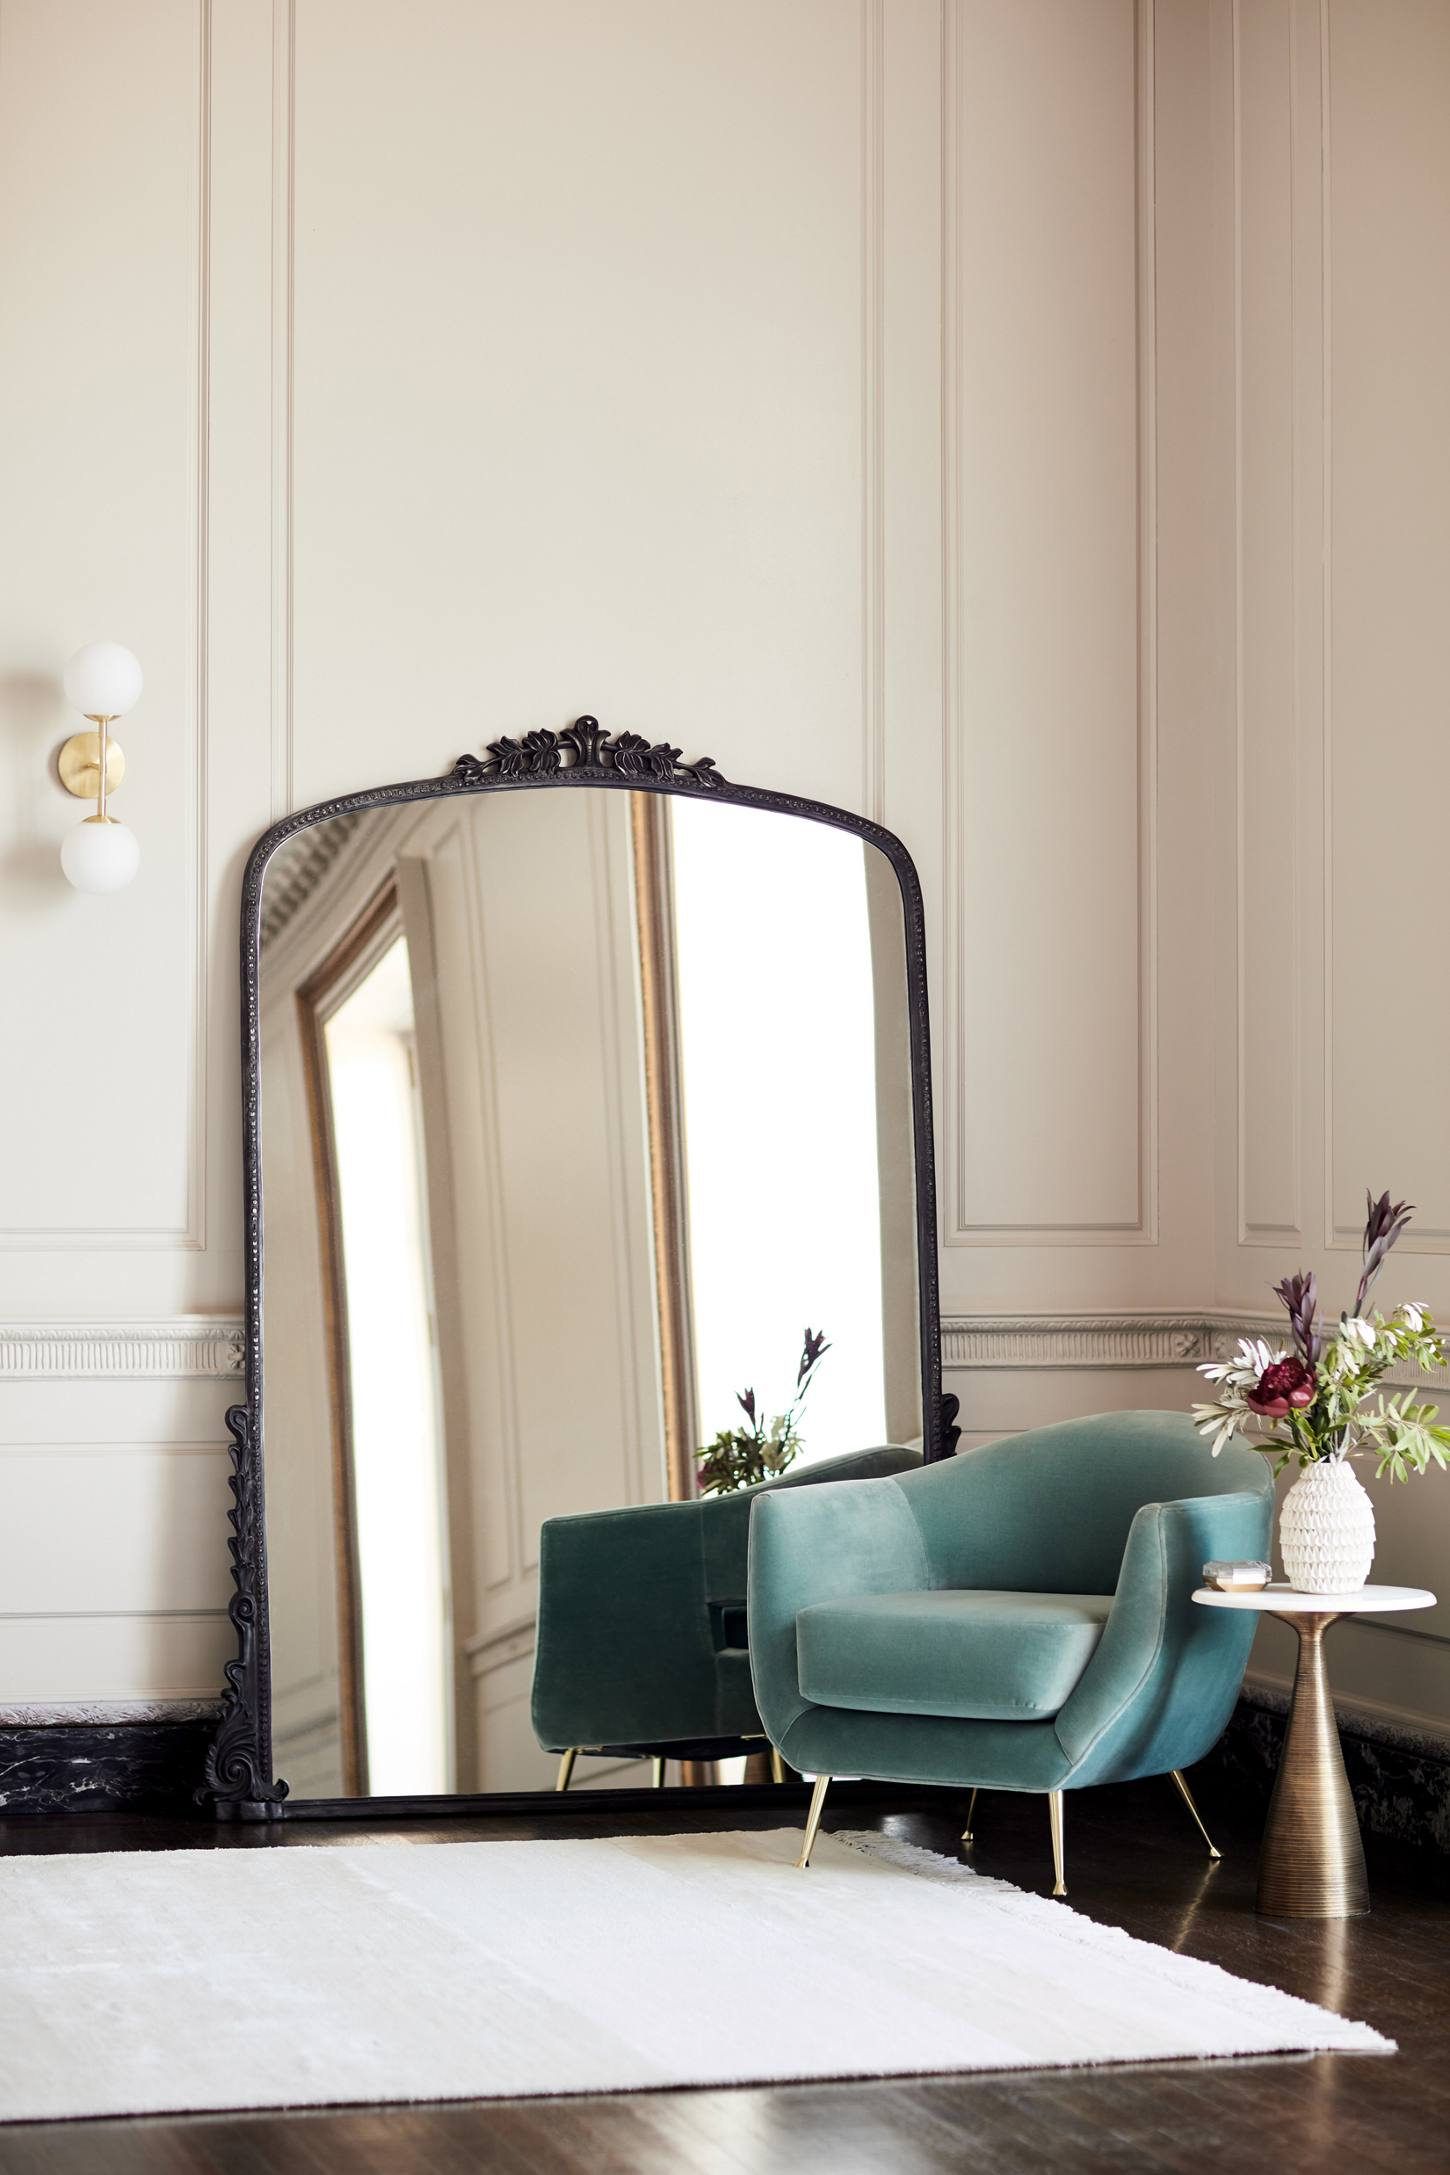 Anthropologie living room - Double Perryman Sconce Anthropologie Anthropologie Living Room Anthropologie